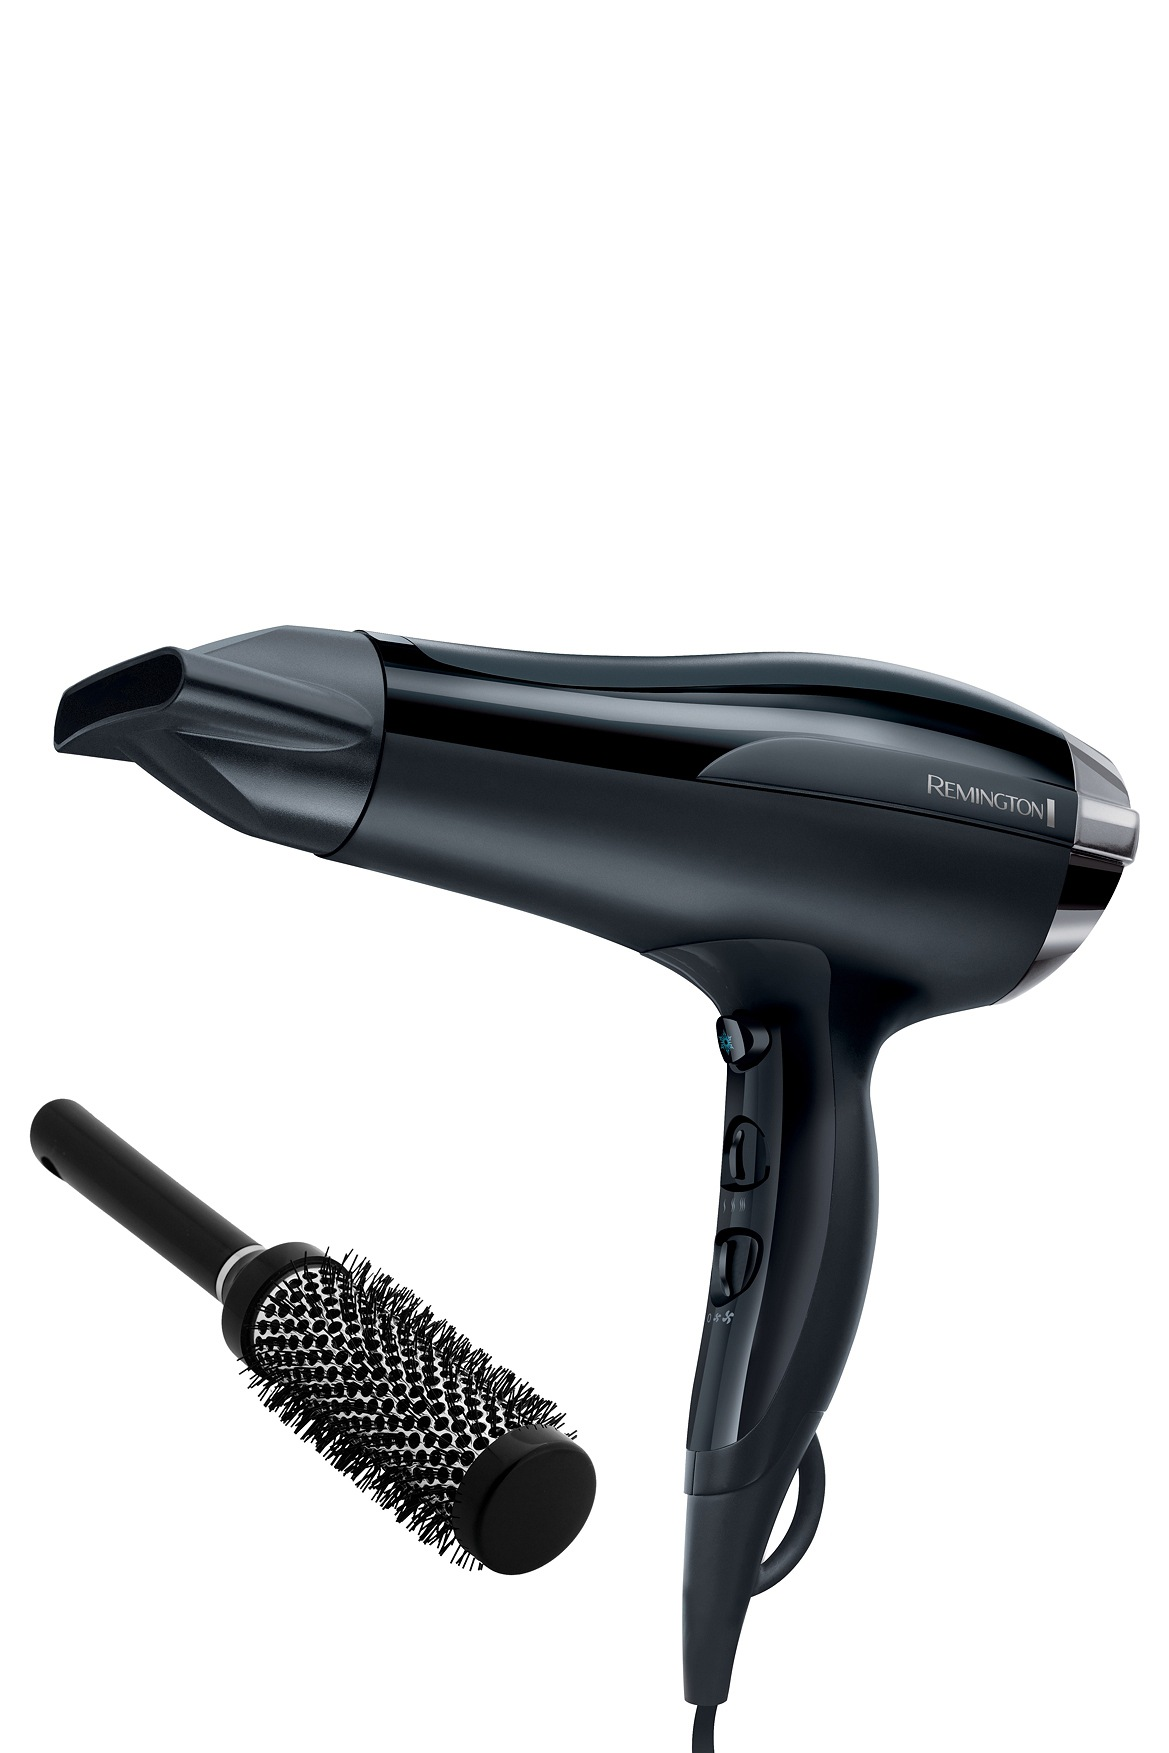 styling hair dryer brush new remington d5210bau styling pro 2150 hair dryer with 4136